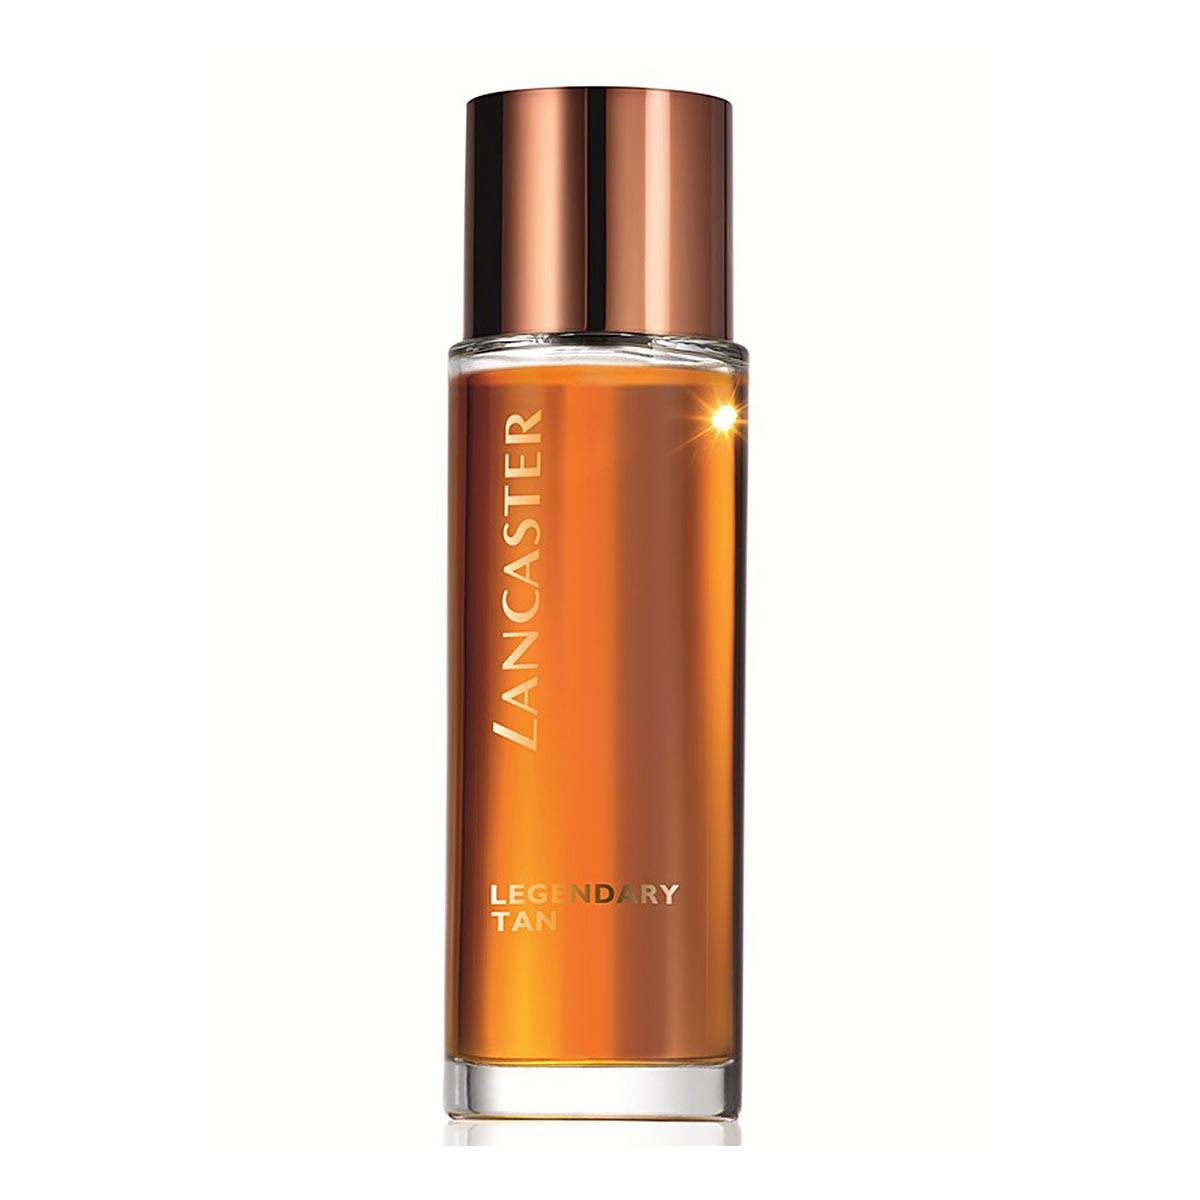 Lancaster fragrances Legendary Tan Oil Nospf 100ml